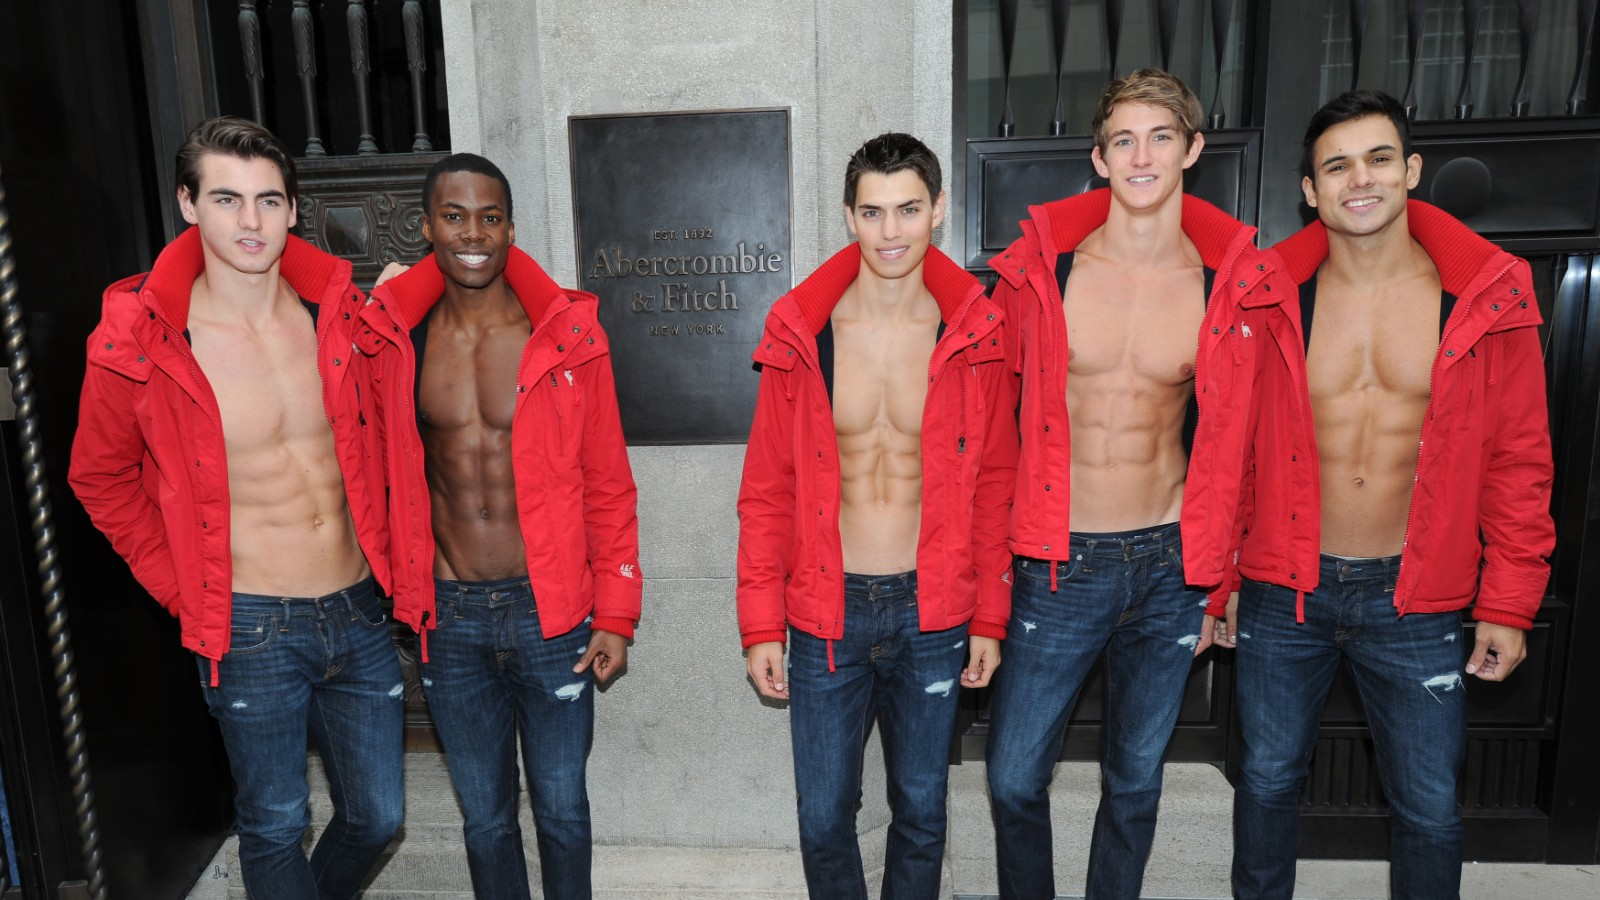 a&f's legal scandals have ruined the company (opinion) - cnn